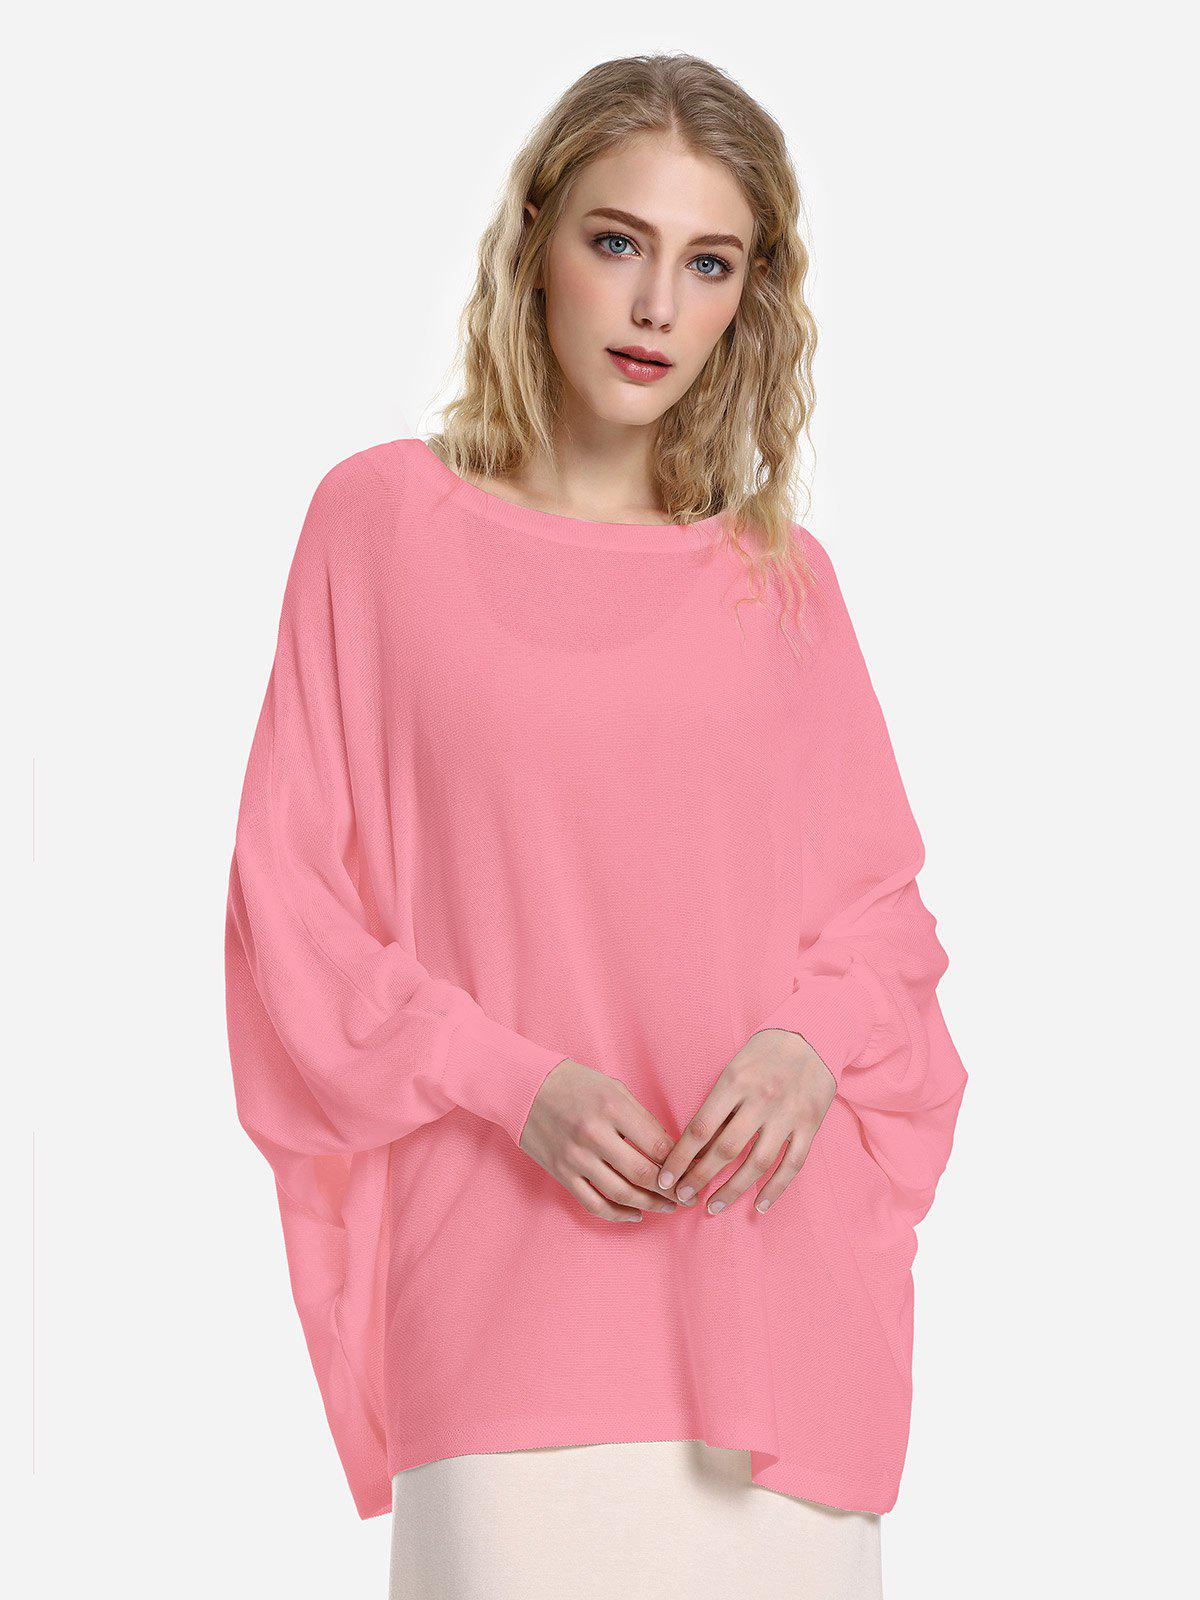 ZAN.STYLE Long Sleeve Round Neck Top - CORAL PINK M